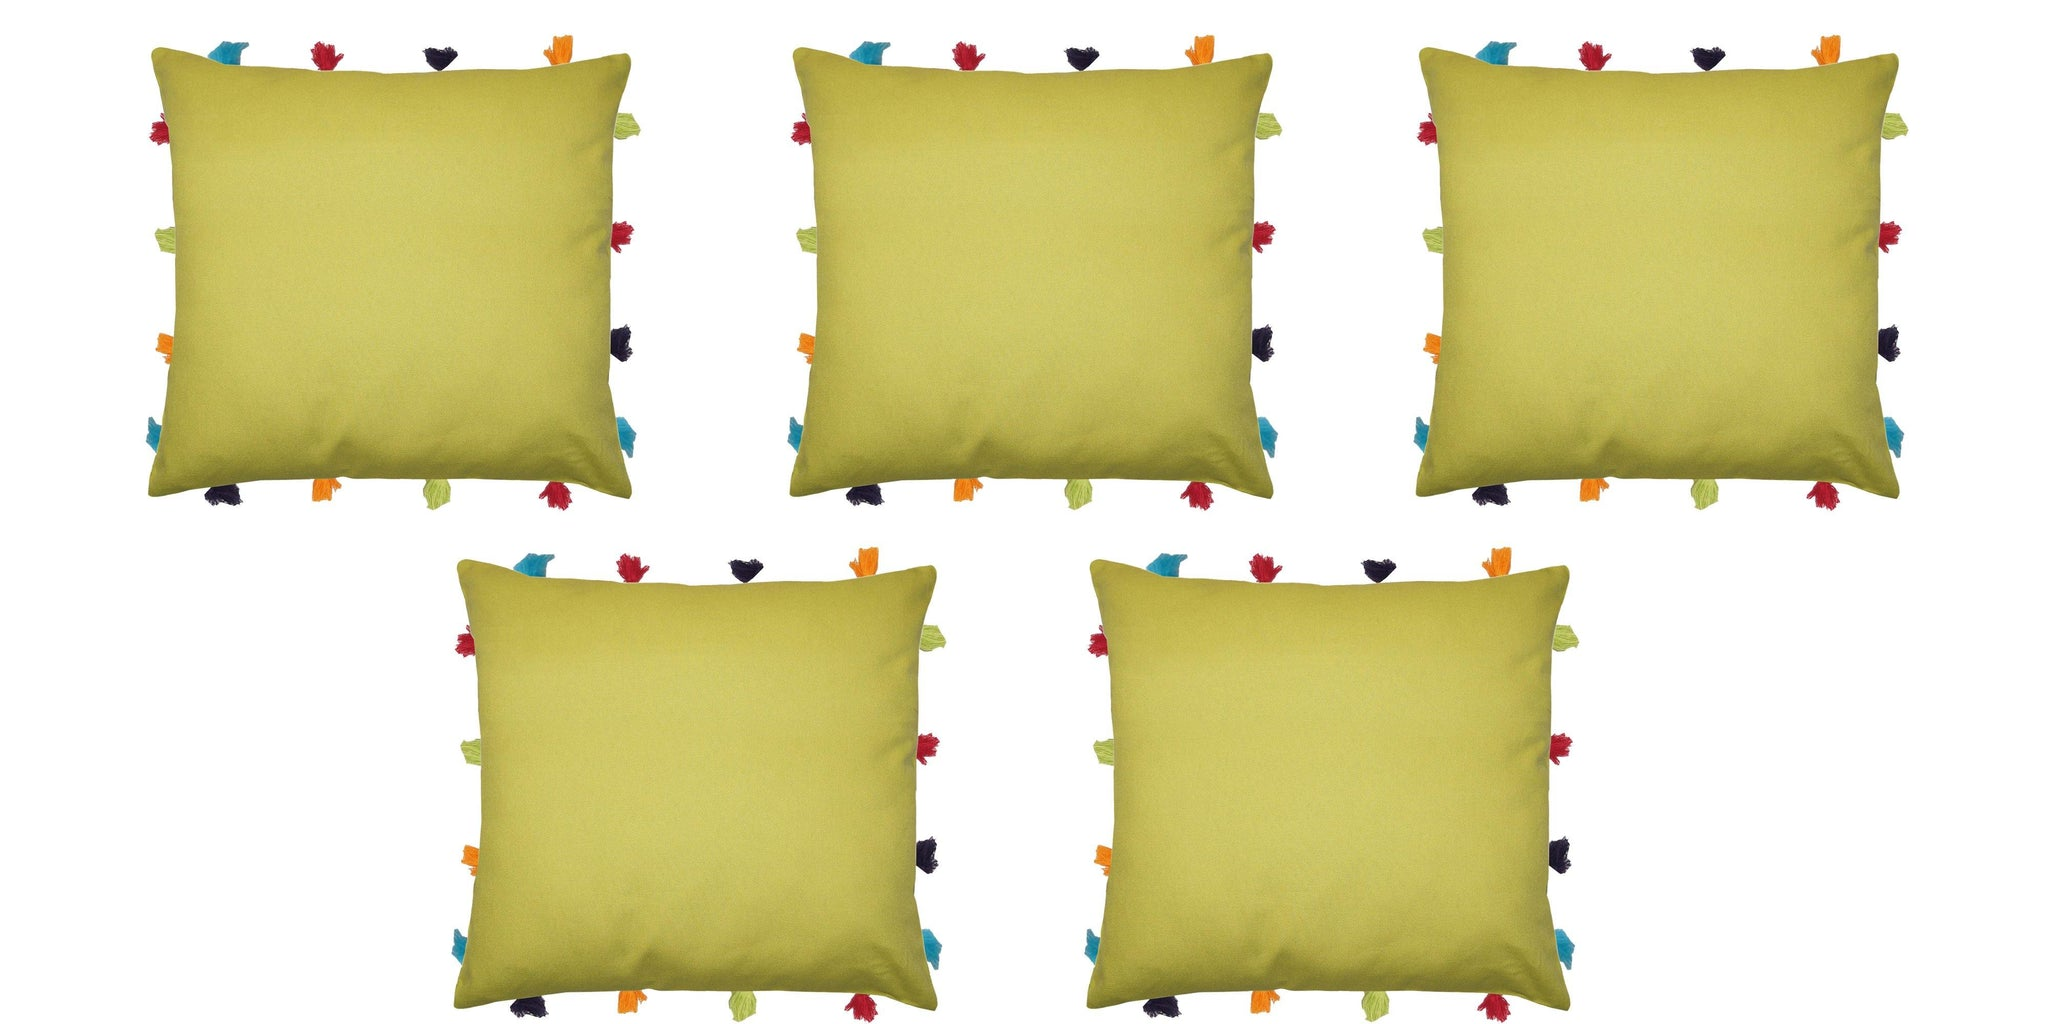 "Lushomes Palm Cushion Cover with Colorful tassels (5 pcs, 14 x 14"") - Lushomes"